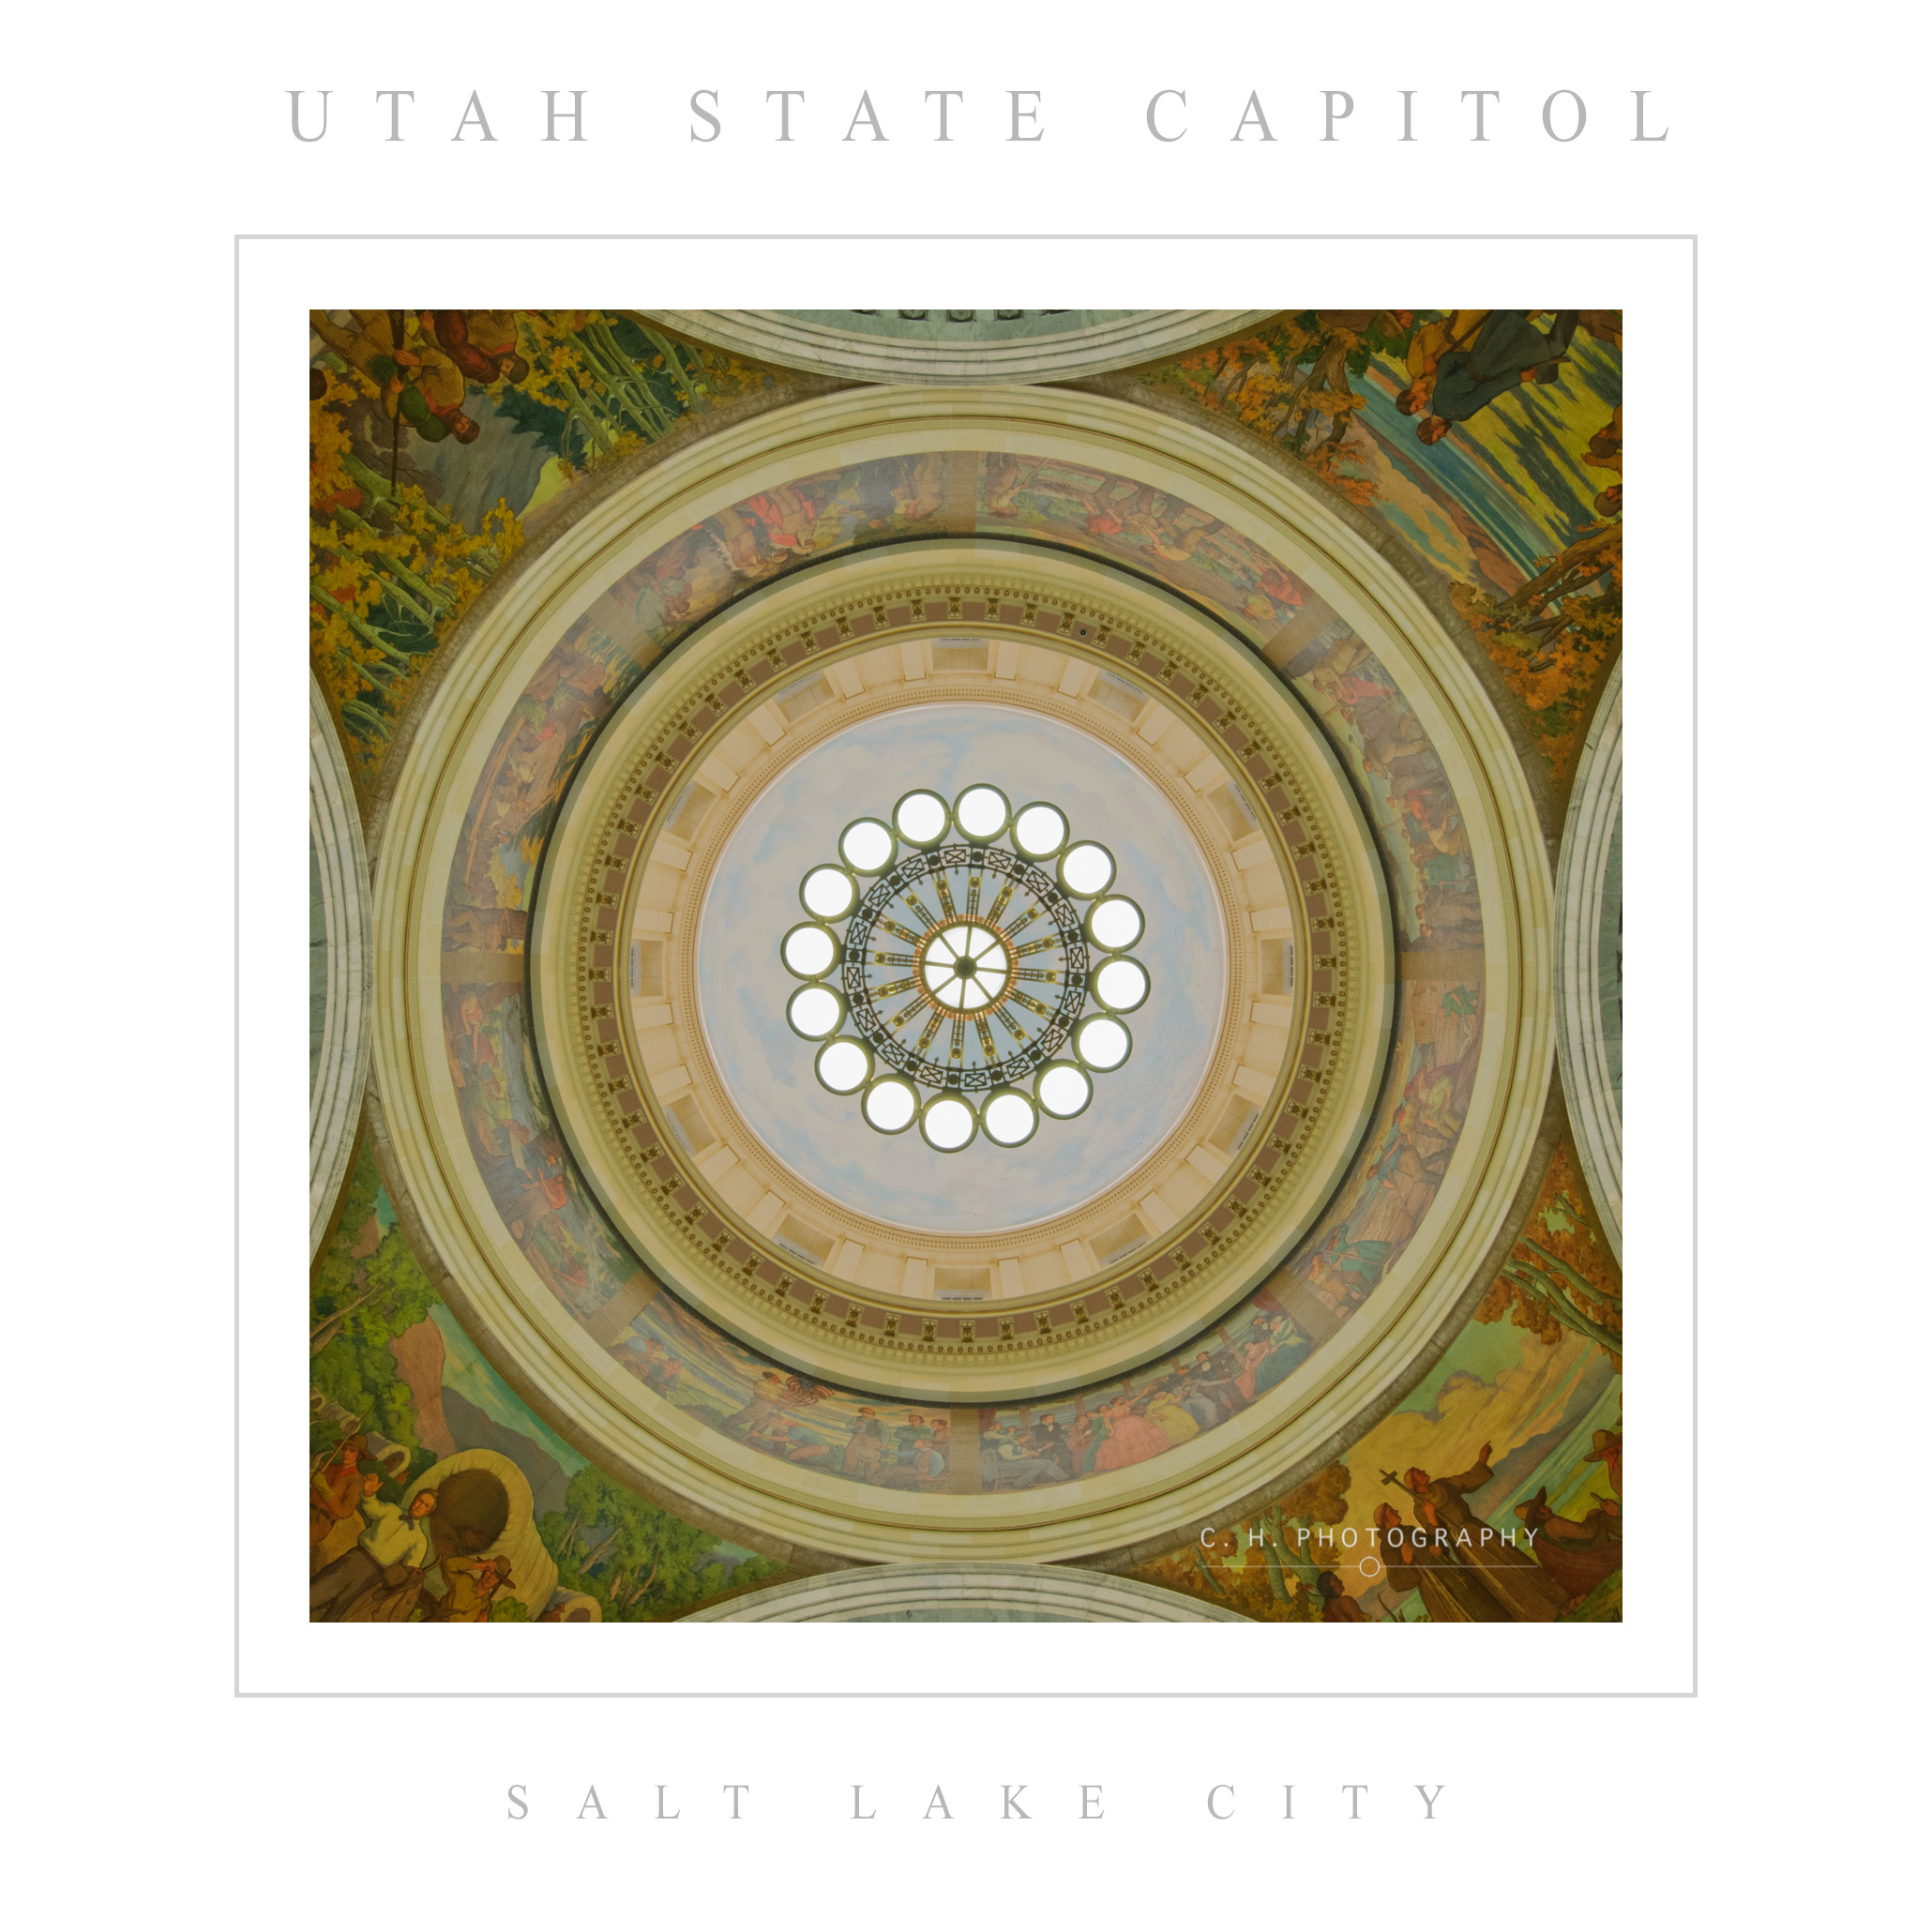 My Home Utah - Please take a look at My Home Utah. This is a project that I have been planning for many years now and its about to become a reality. If you can take a few minutes of your time to take a look, I would appreciate any help or advice you can offer. Thanks again stay tuned.